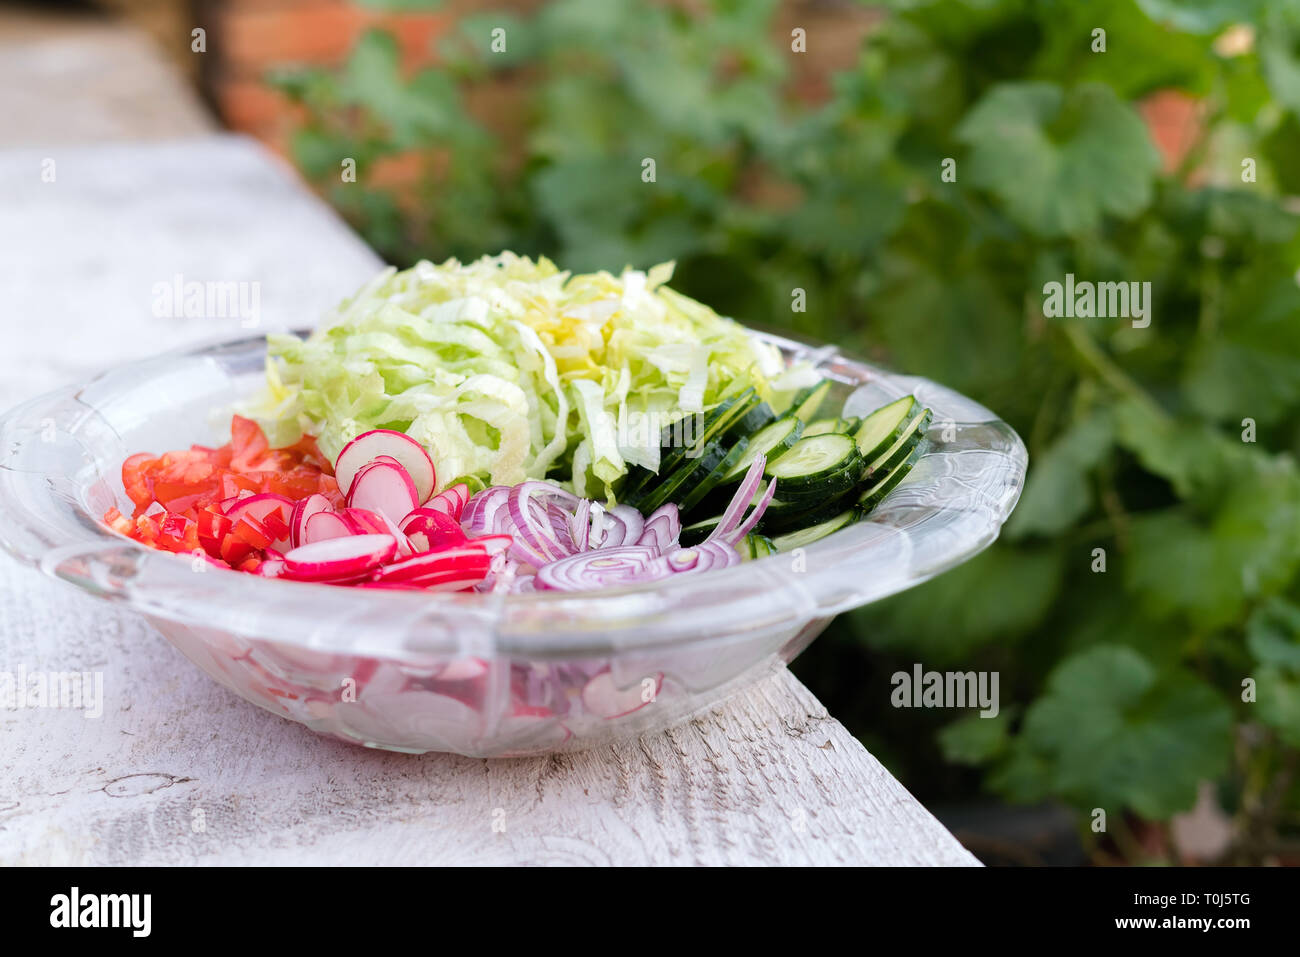 Freshly chopped summer salad. Many delicious vegetables in glass salad bowl - cucumber, lettuce, radish, tomatoes, red onion Stock Photo